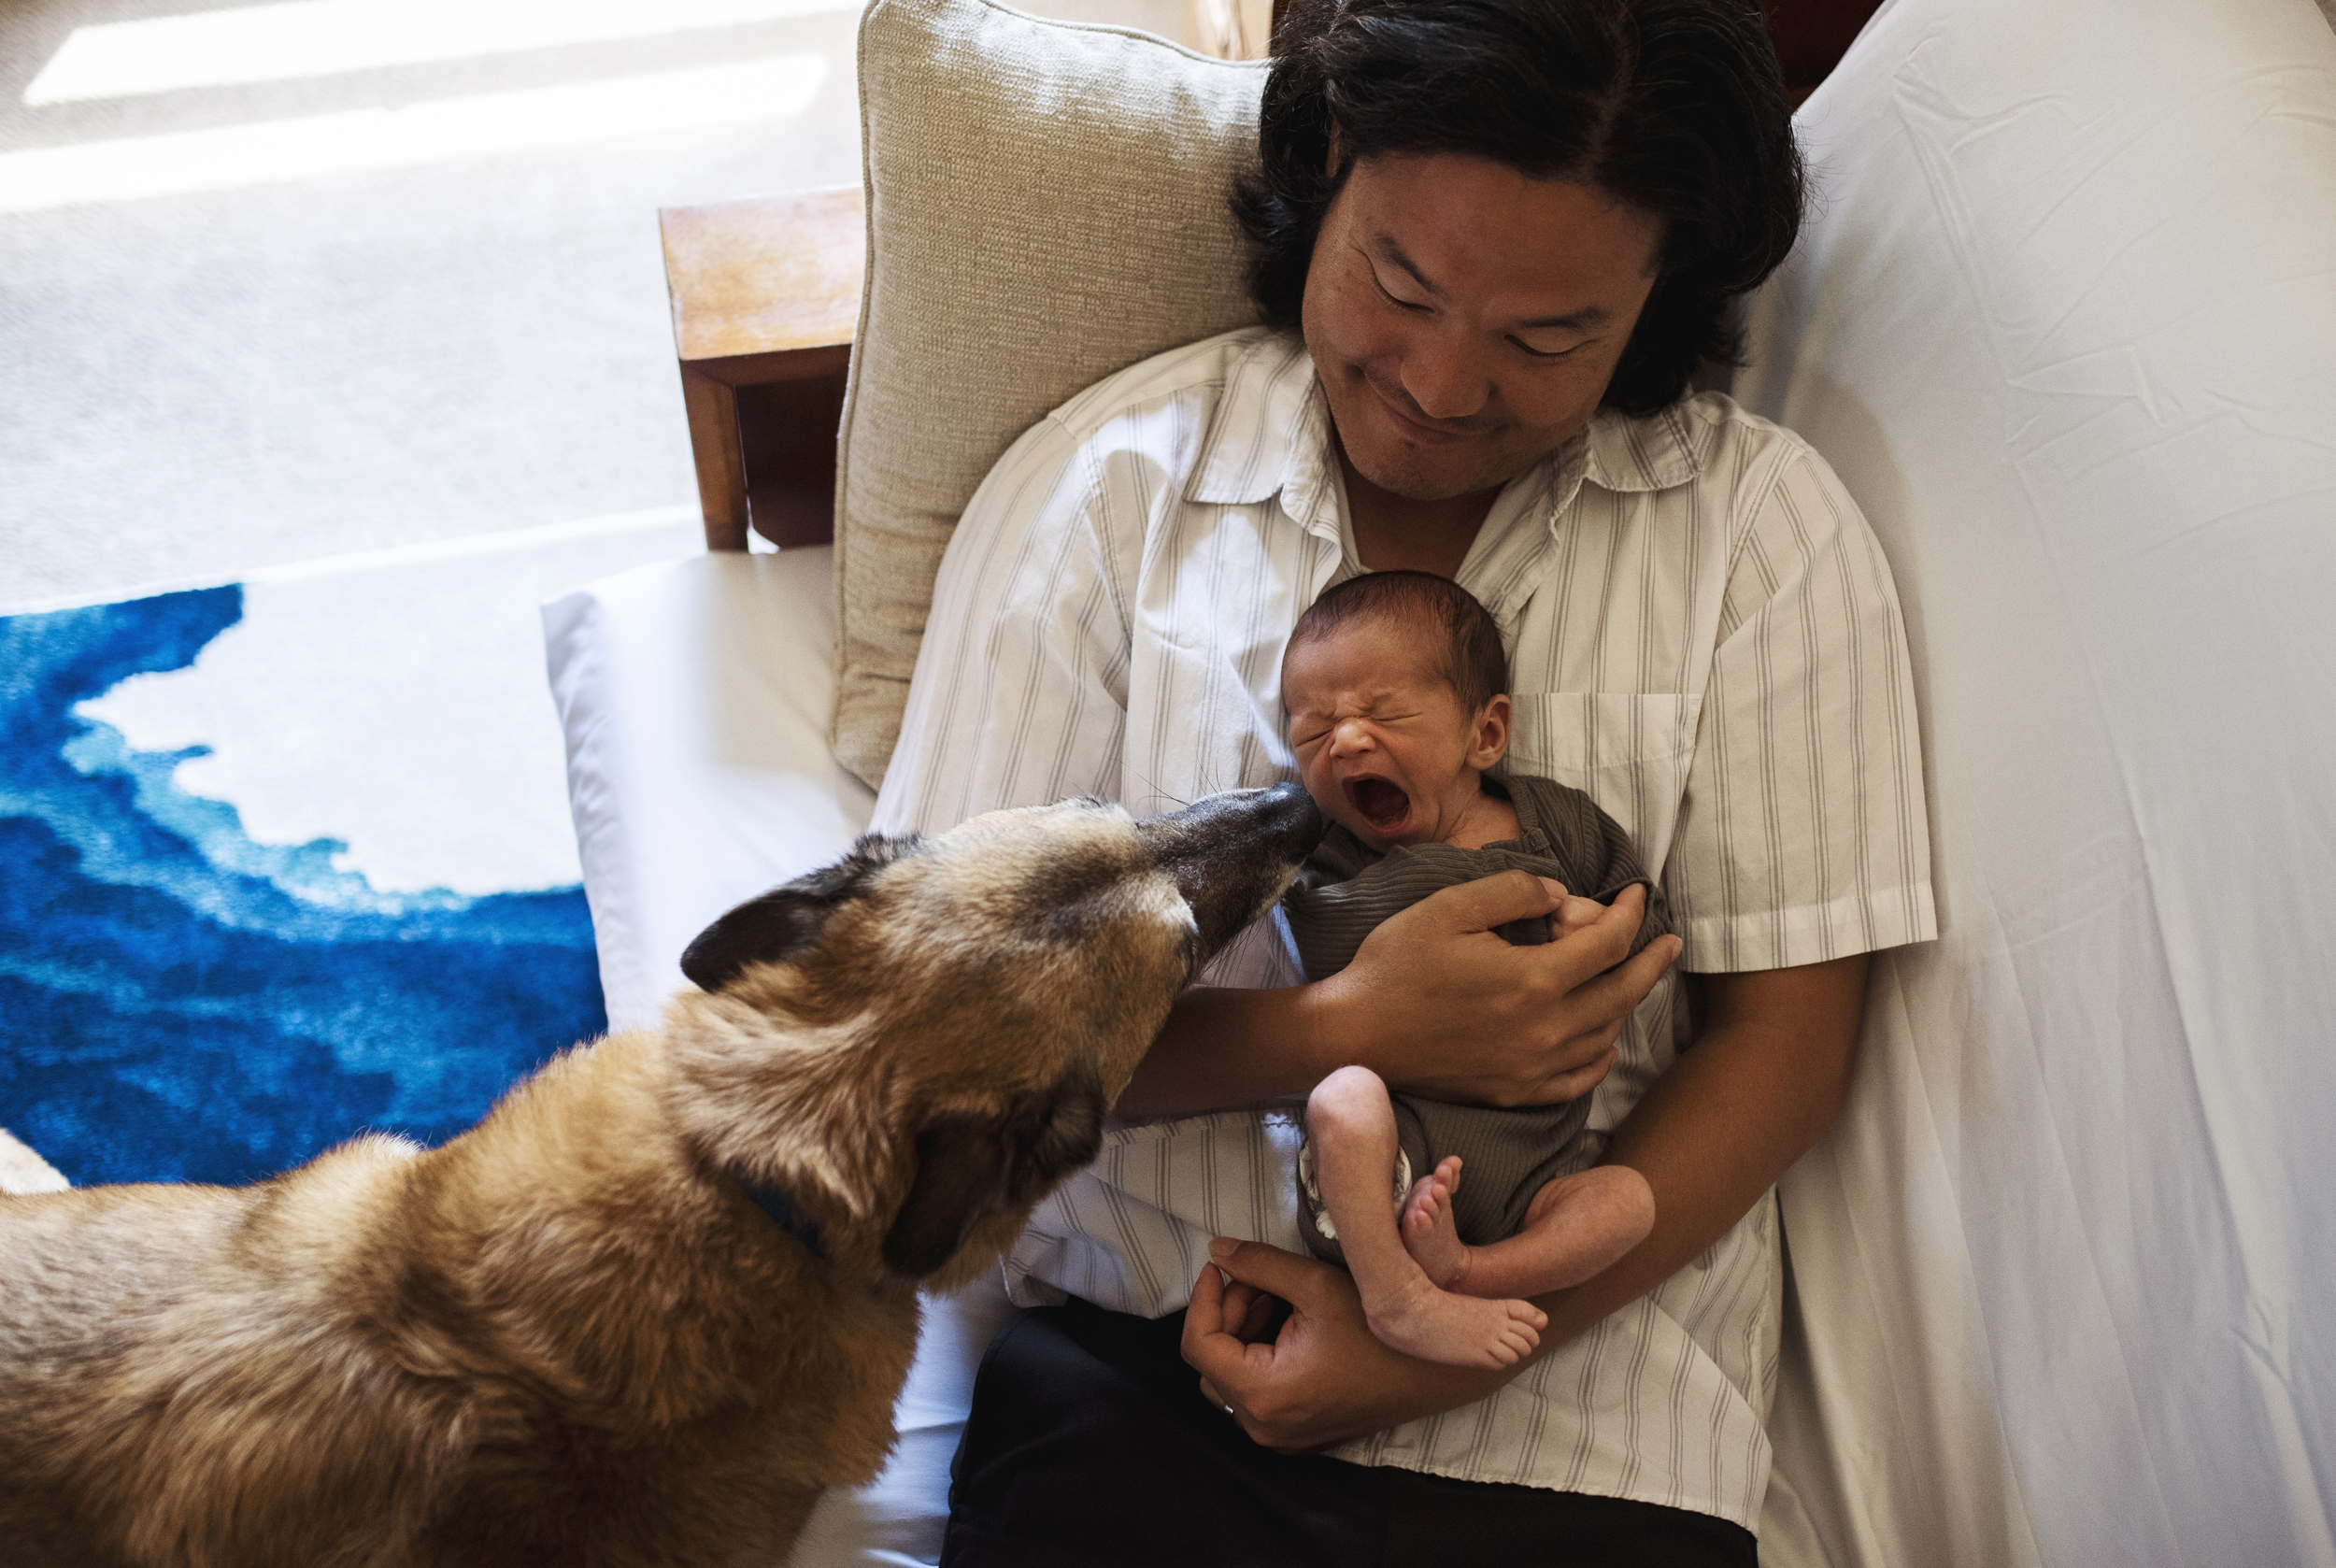 Edmonds family photographer baby is yawning while dog watches on